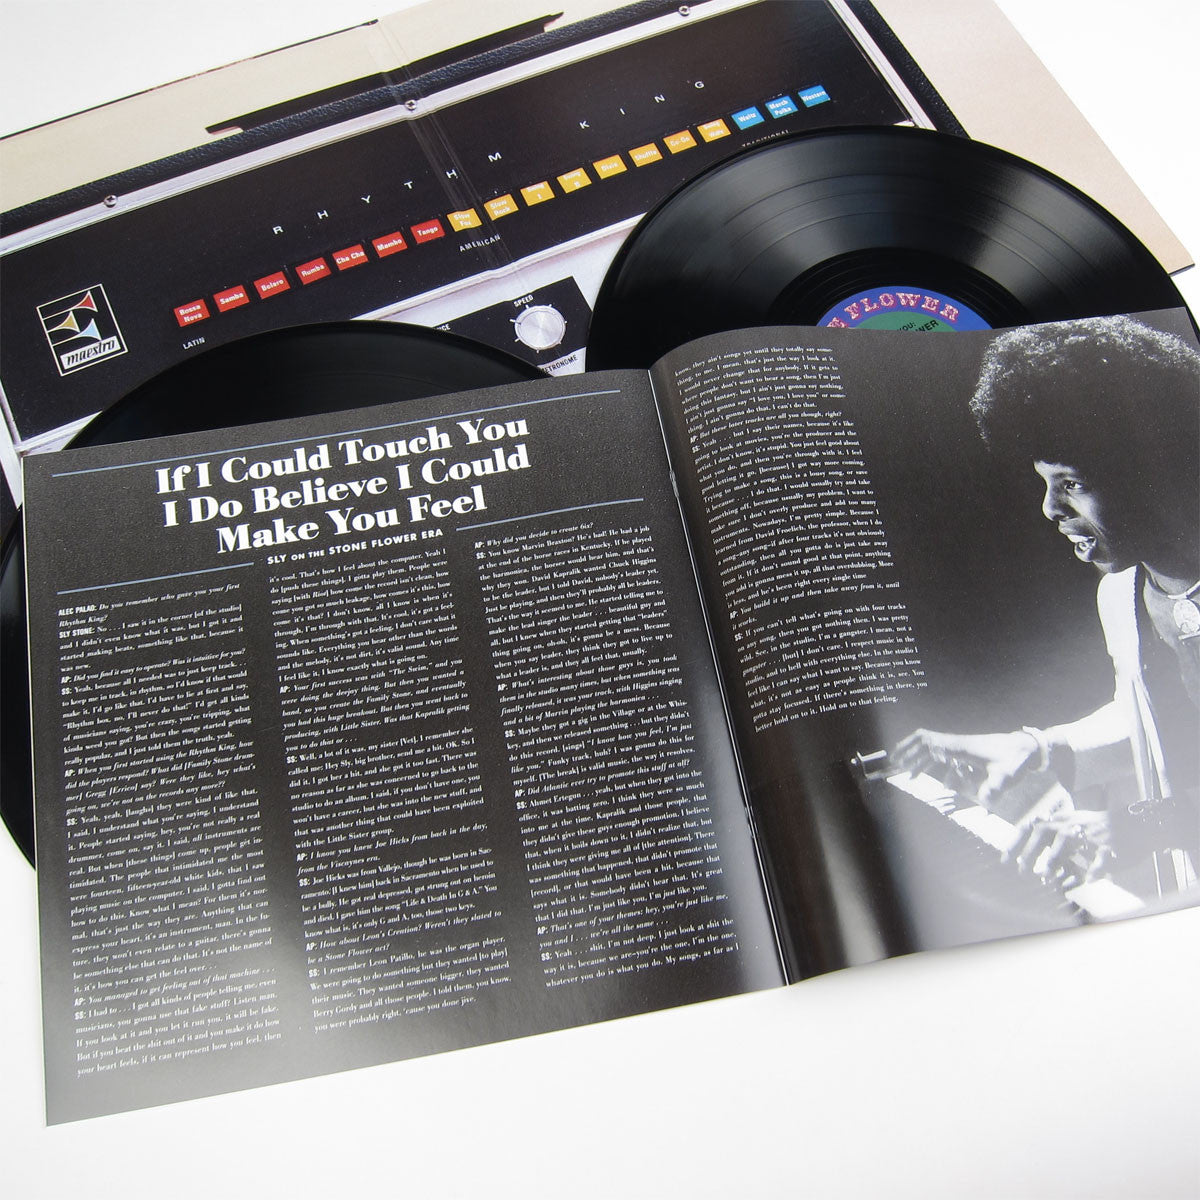 Sly Stone: I'm Just Like You - Sly's Stone Flower 1969-70 Vinyl 2LP booklet